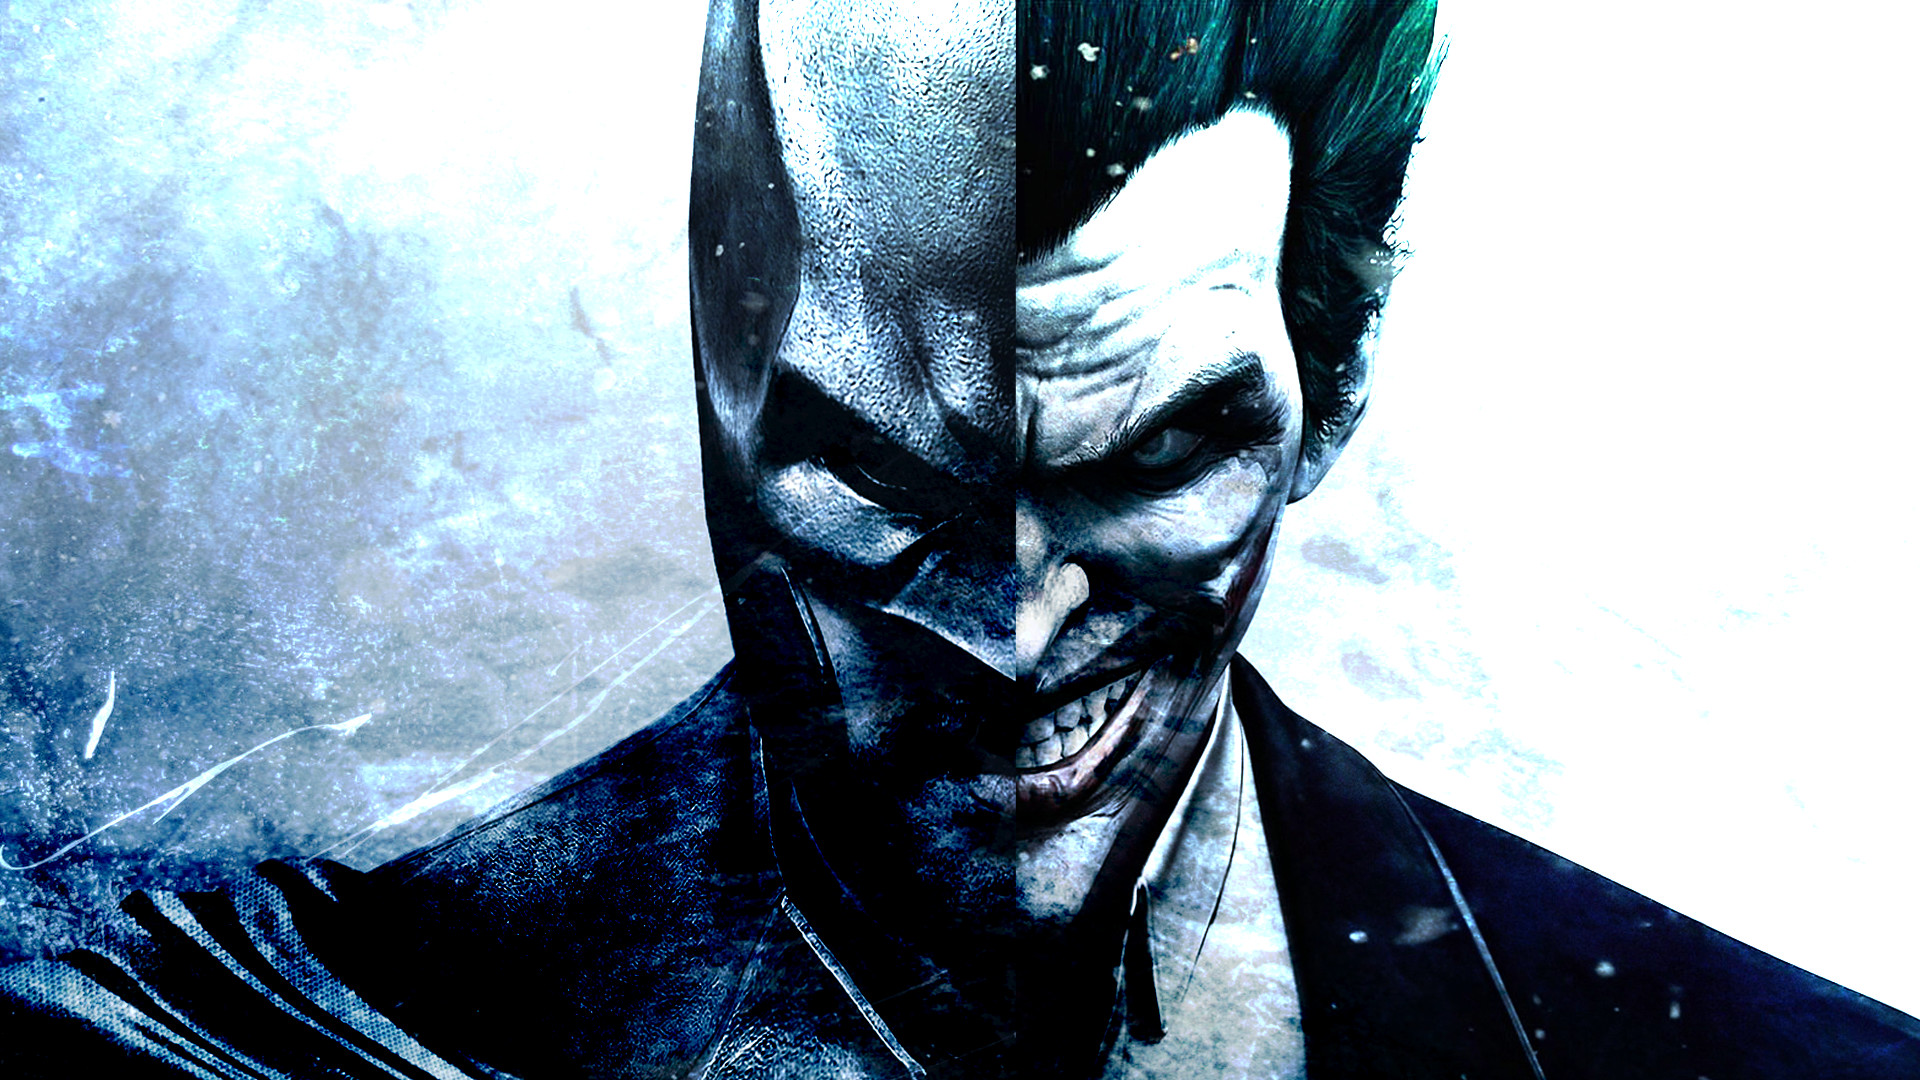 batman vs joker wallpapers ·①